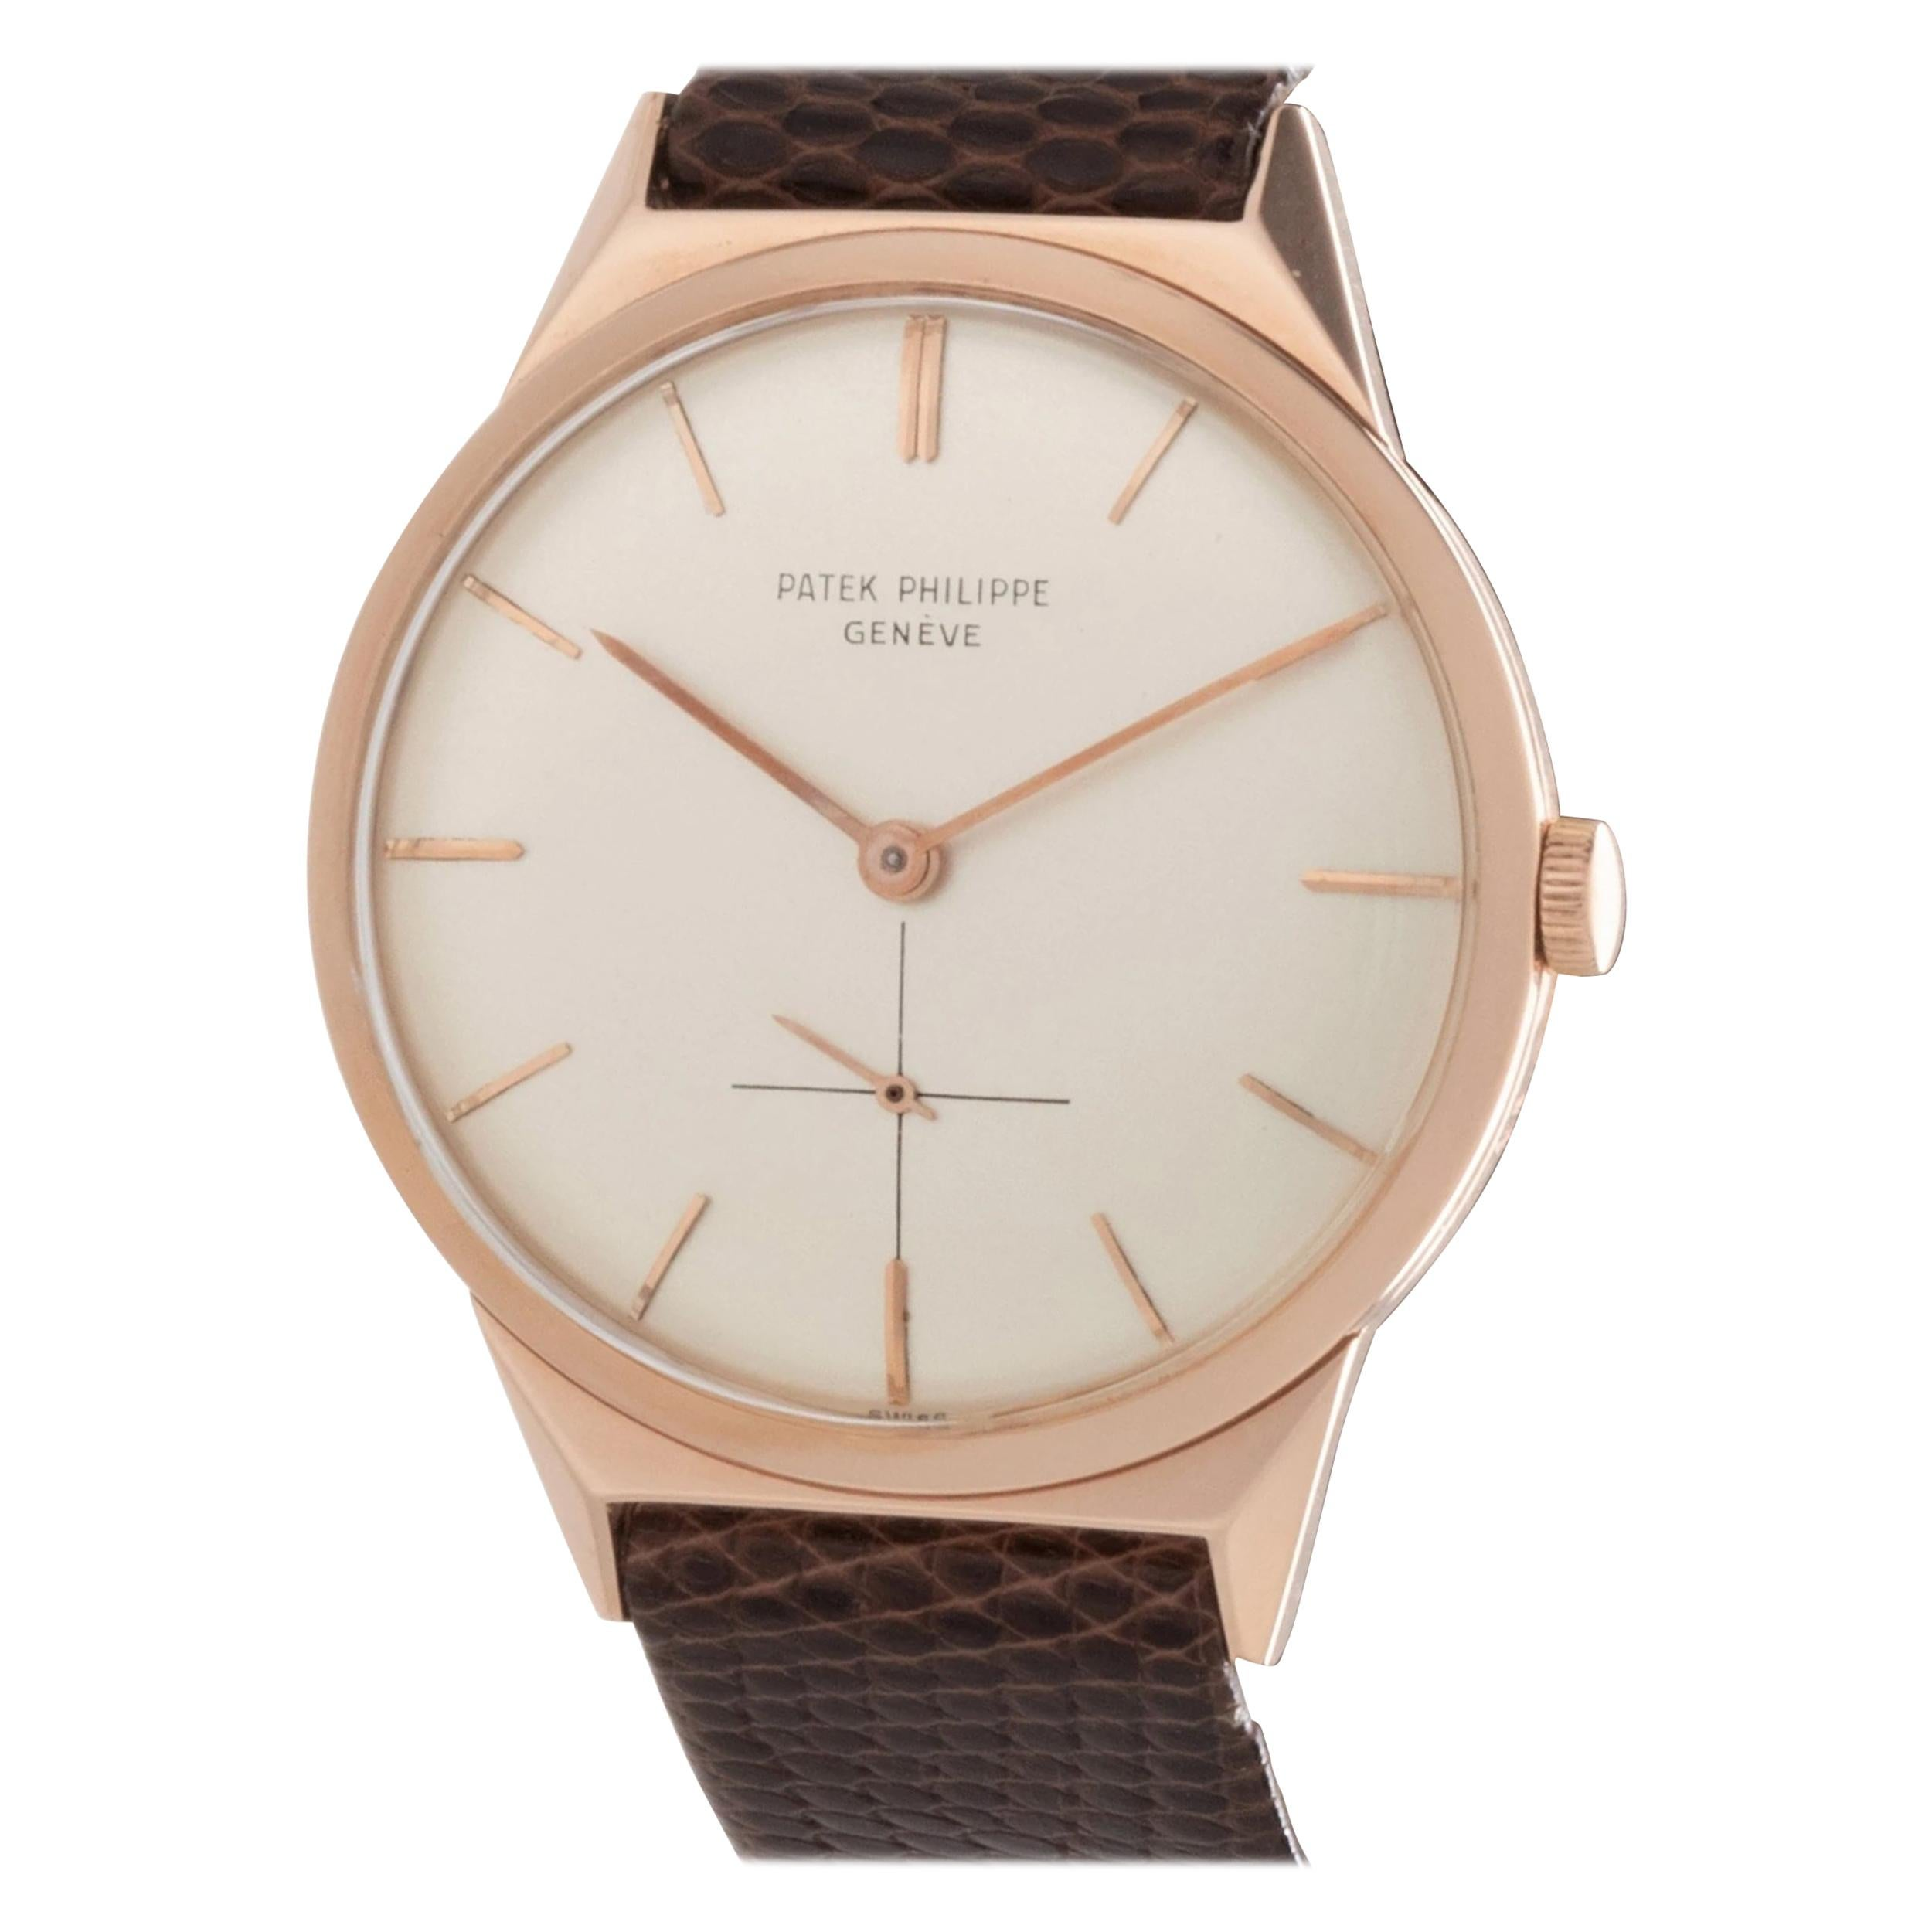 Patek Philippe 2568R Calatrava Watch